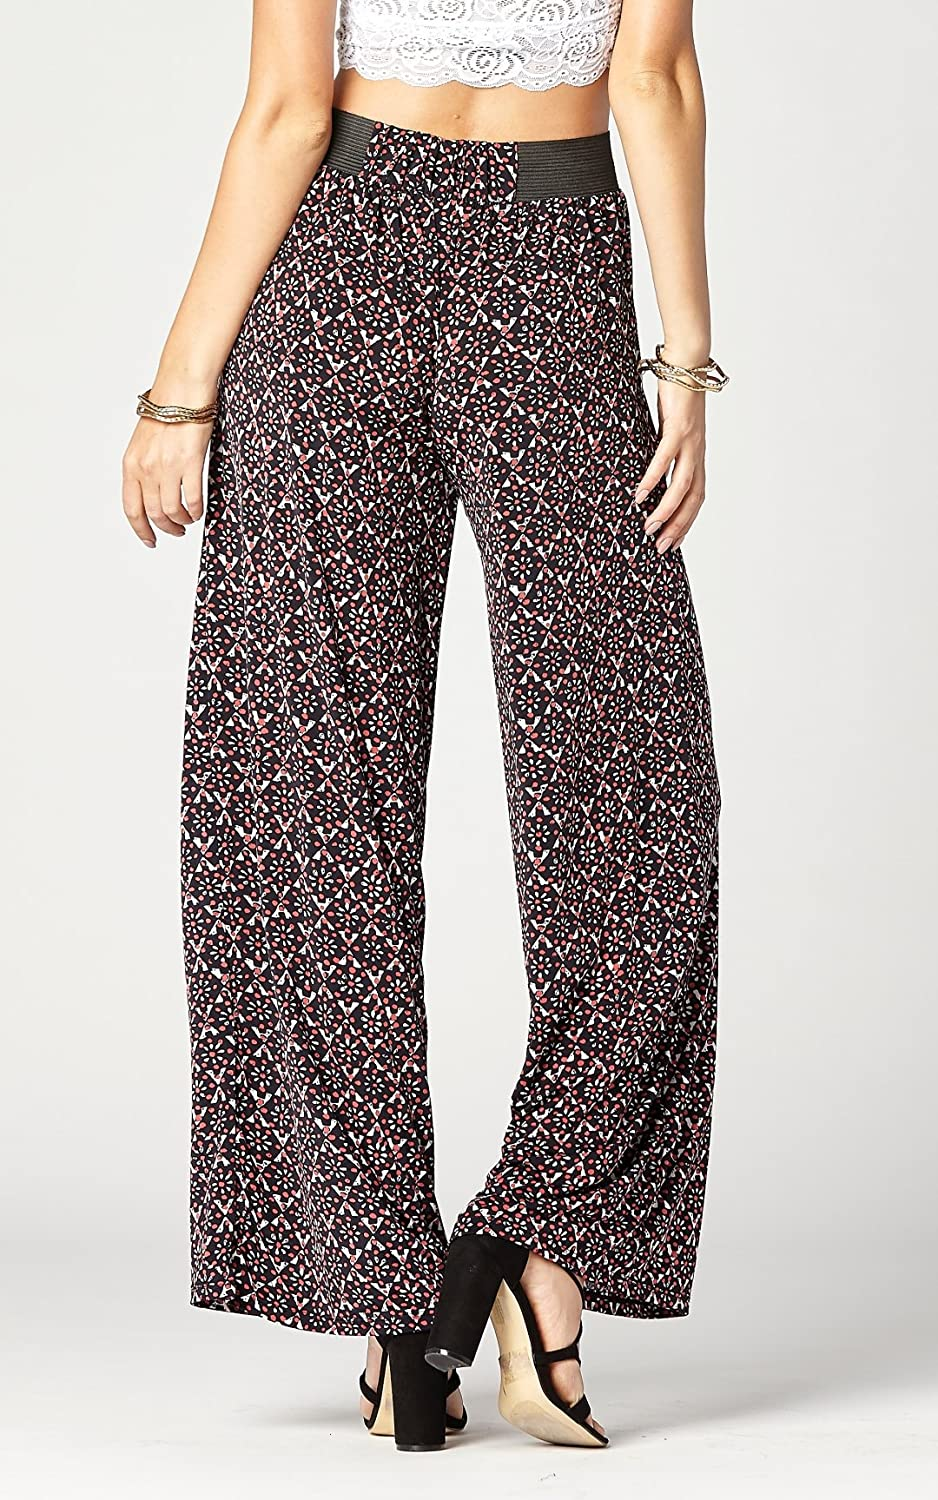 814933e9629 Premium Women s Palazzo Pants with Pockets - High Waist - Solid and Printed  Designs